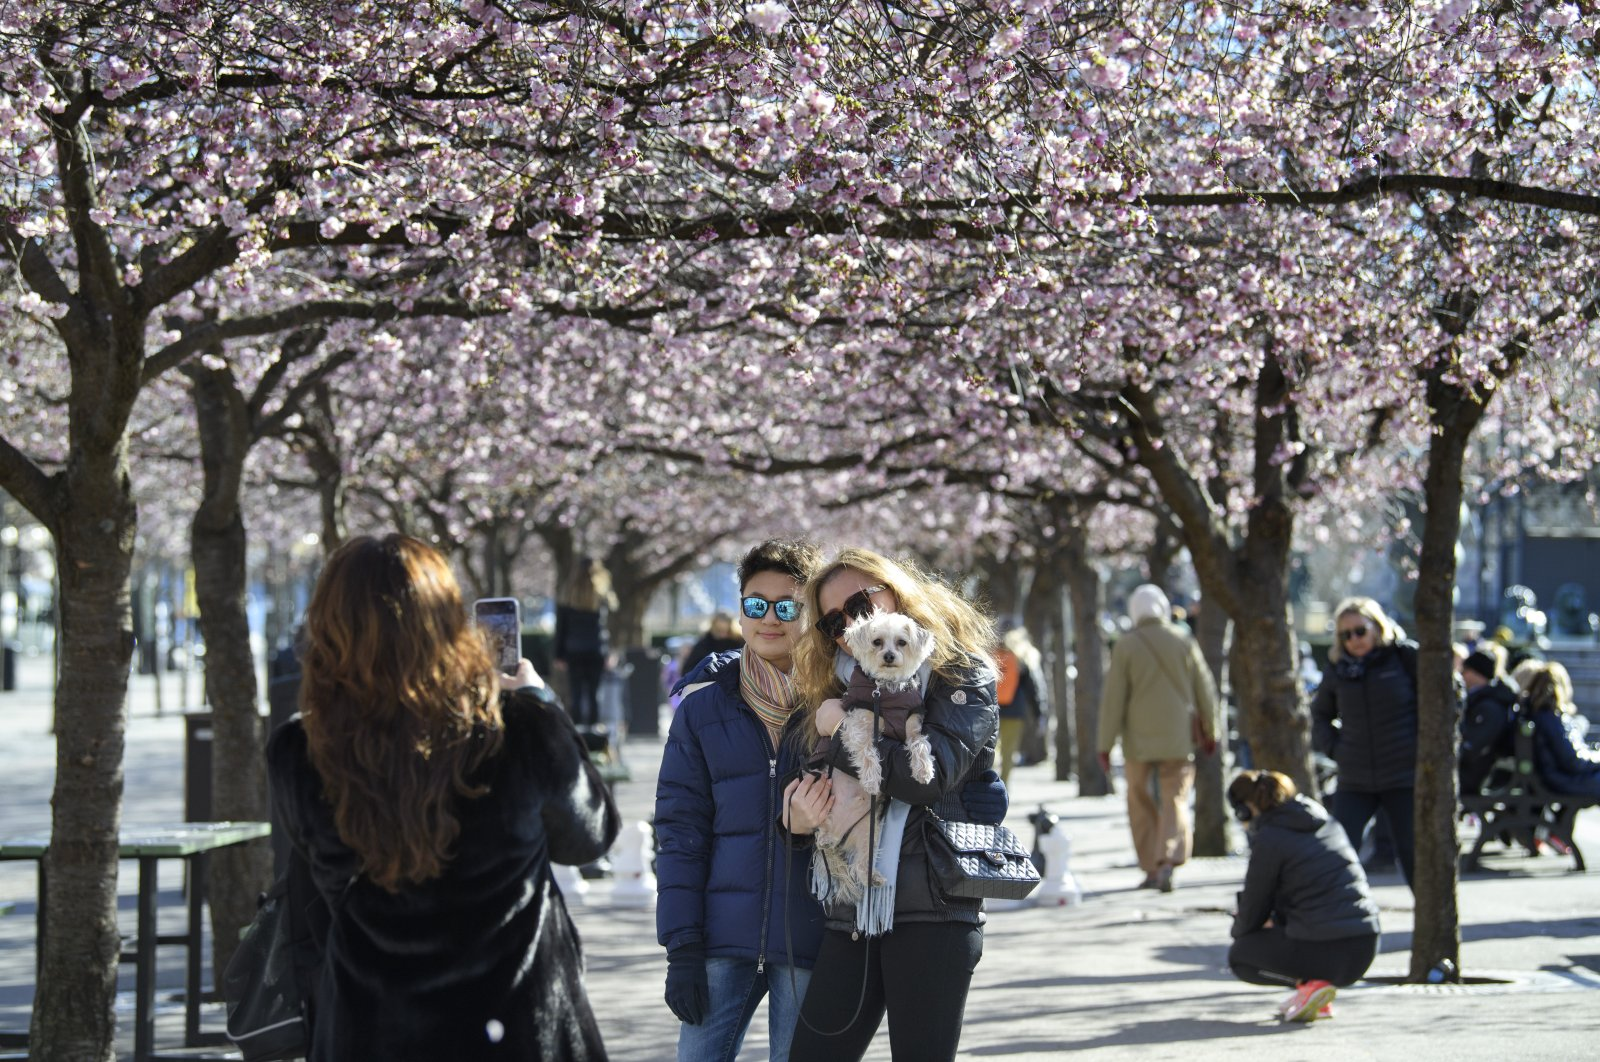 People pose for a photo while strolling with others among the blooming cherry trees in Kungstradgarden park, Stockholm, March 22, 2020. (AP Photo)